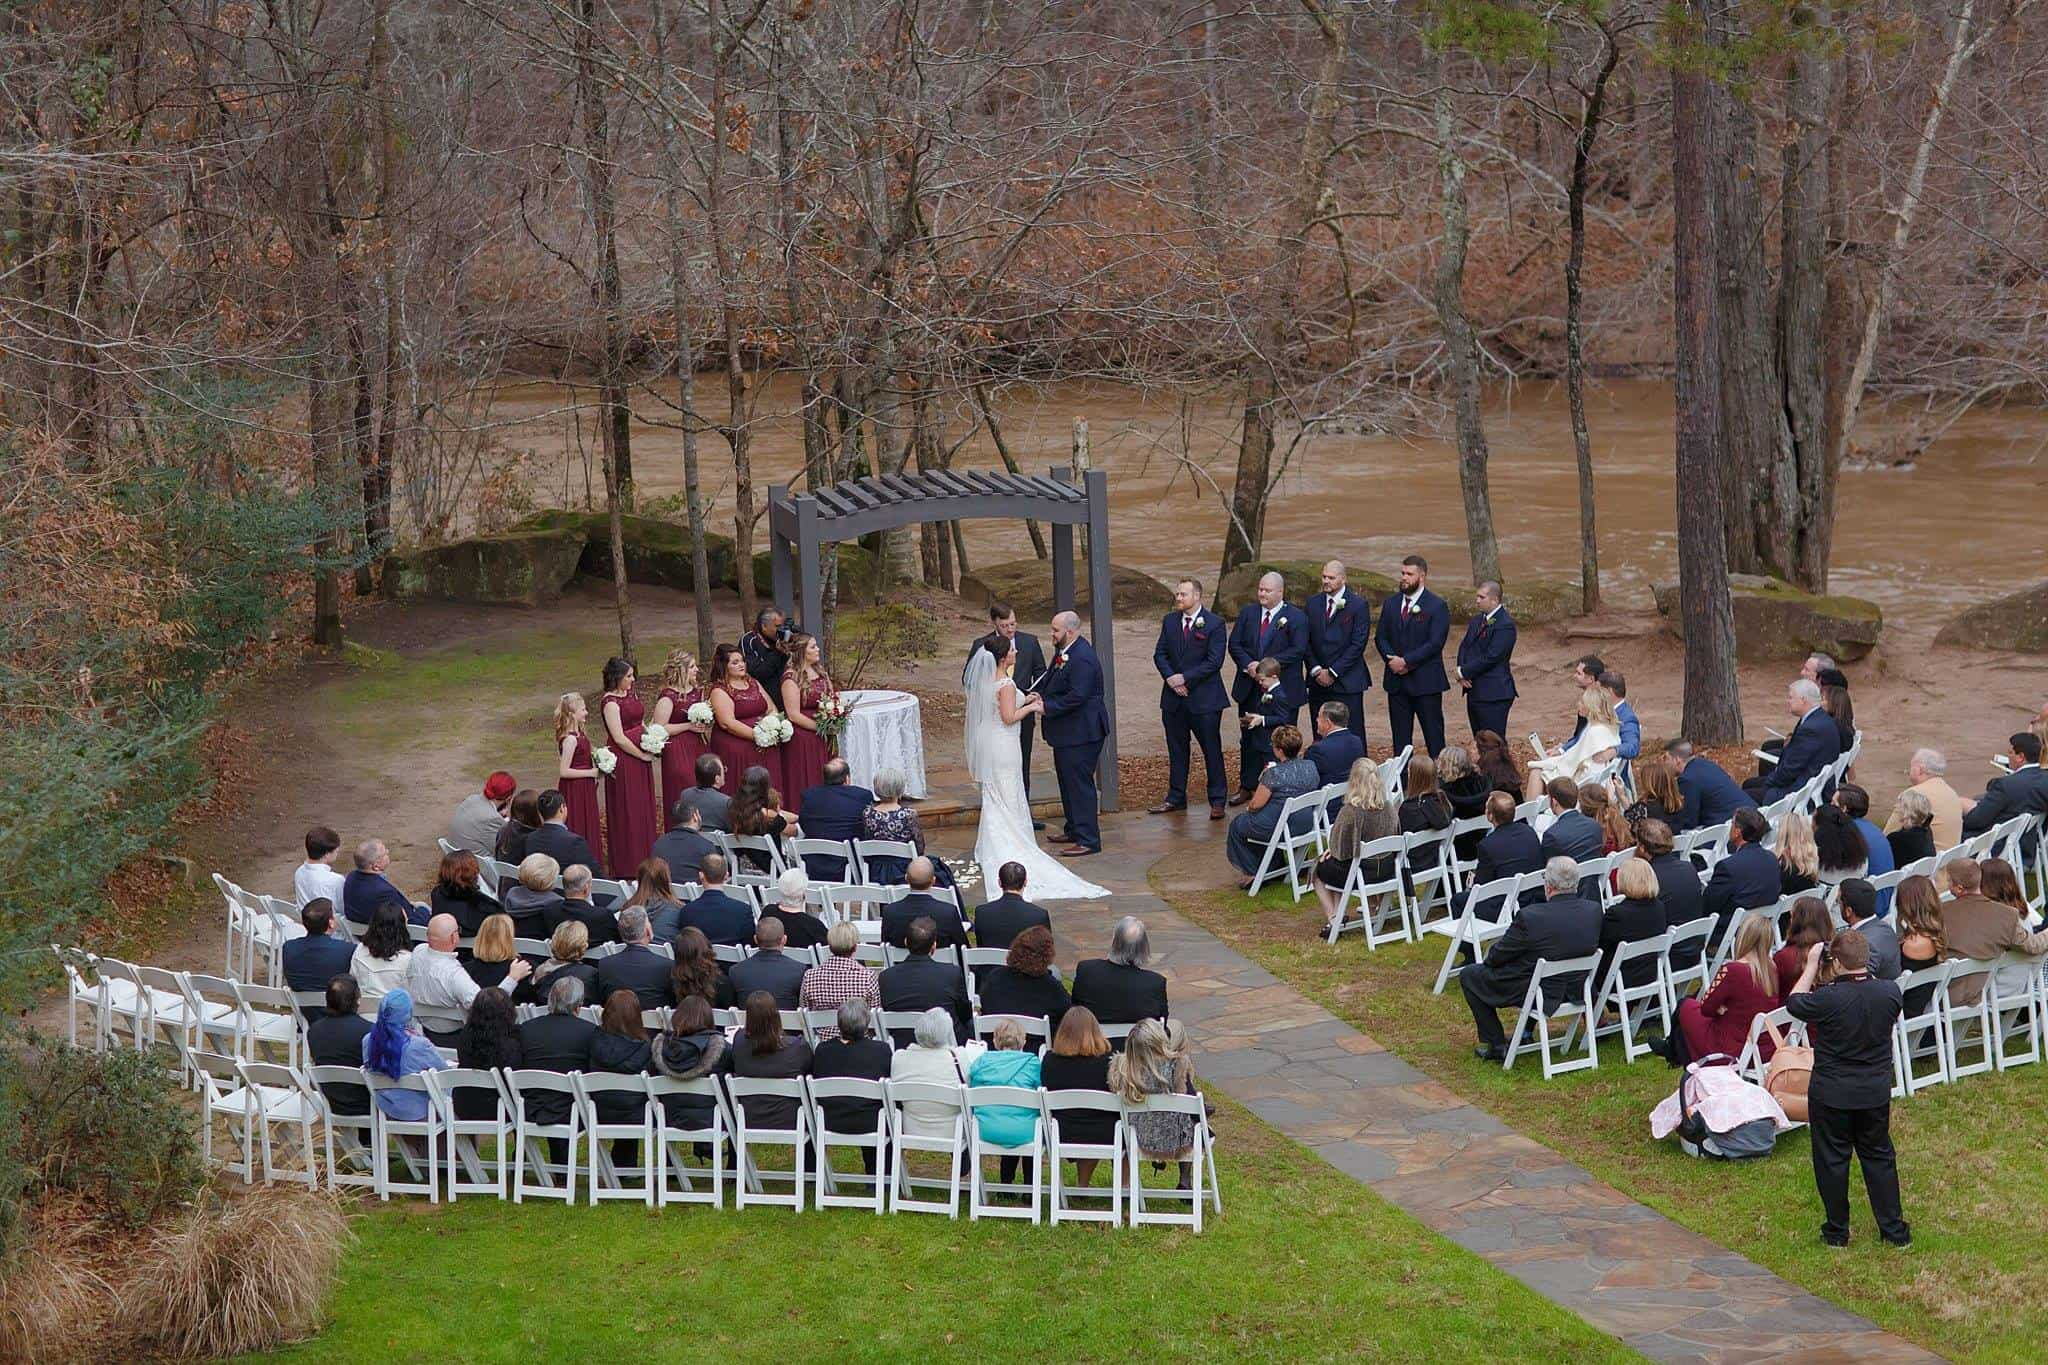 December Winter Outdoor Wedding Ceremony on a river in Snellville with bridal party, bride and groom at the altar with guests seated